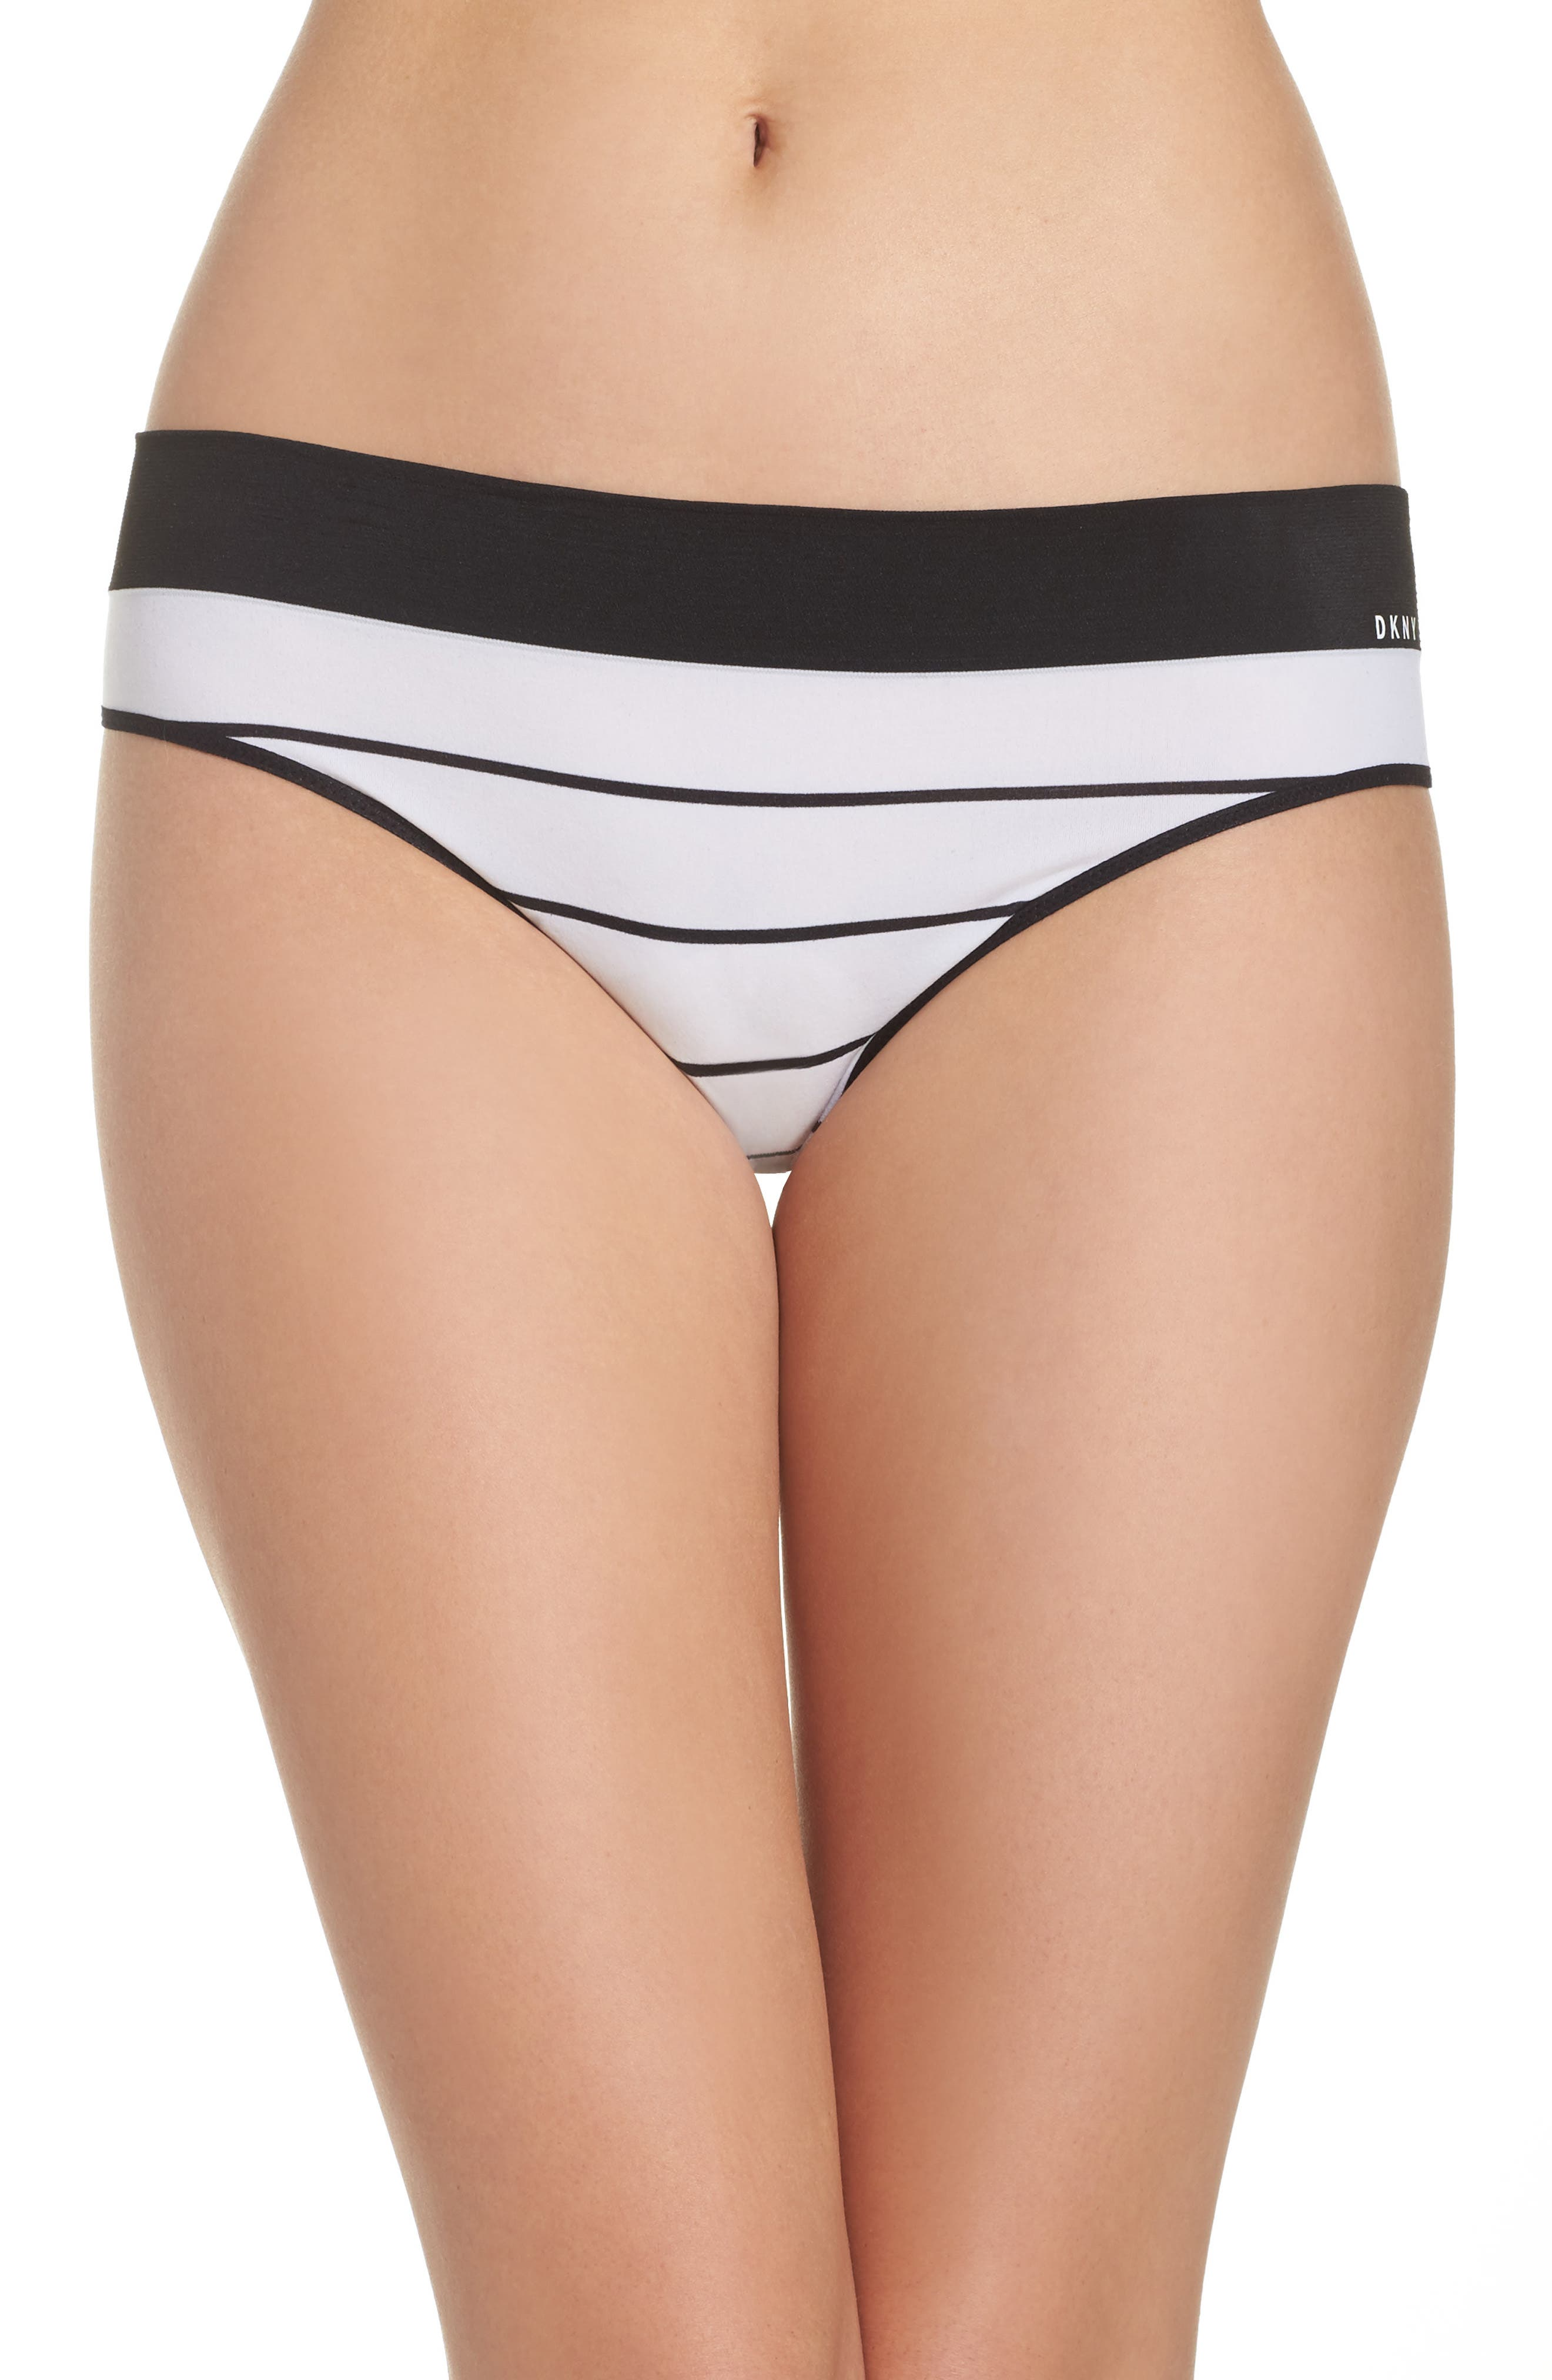 Alternate Image 1 Selected - DKNY LiteWear Seamless Thong (3 for $33)